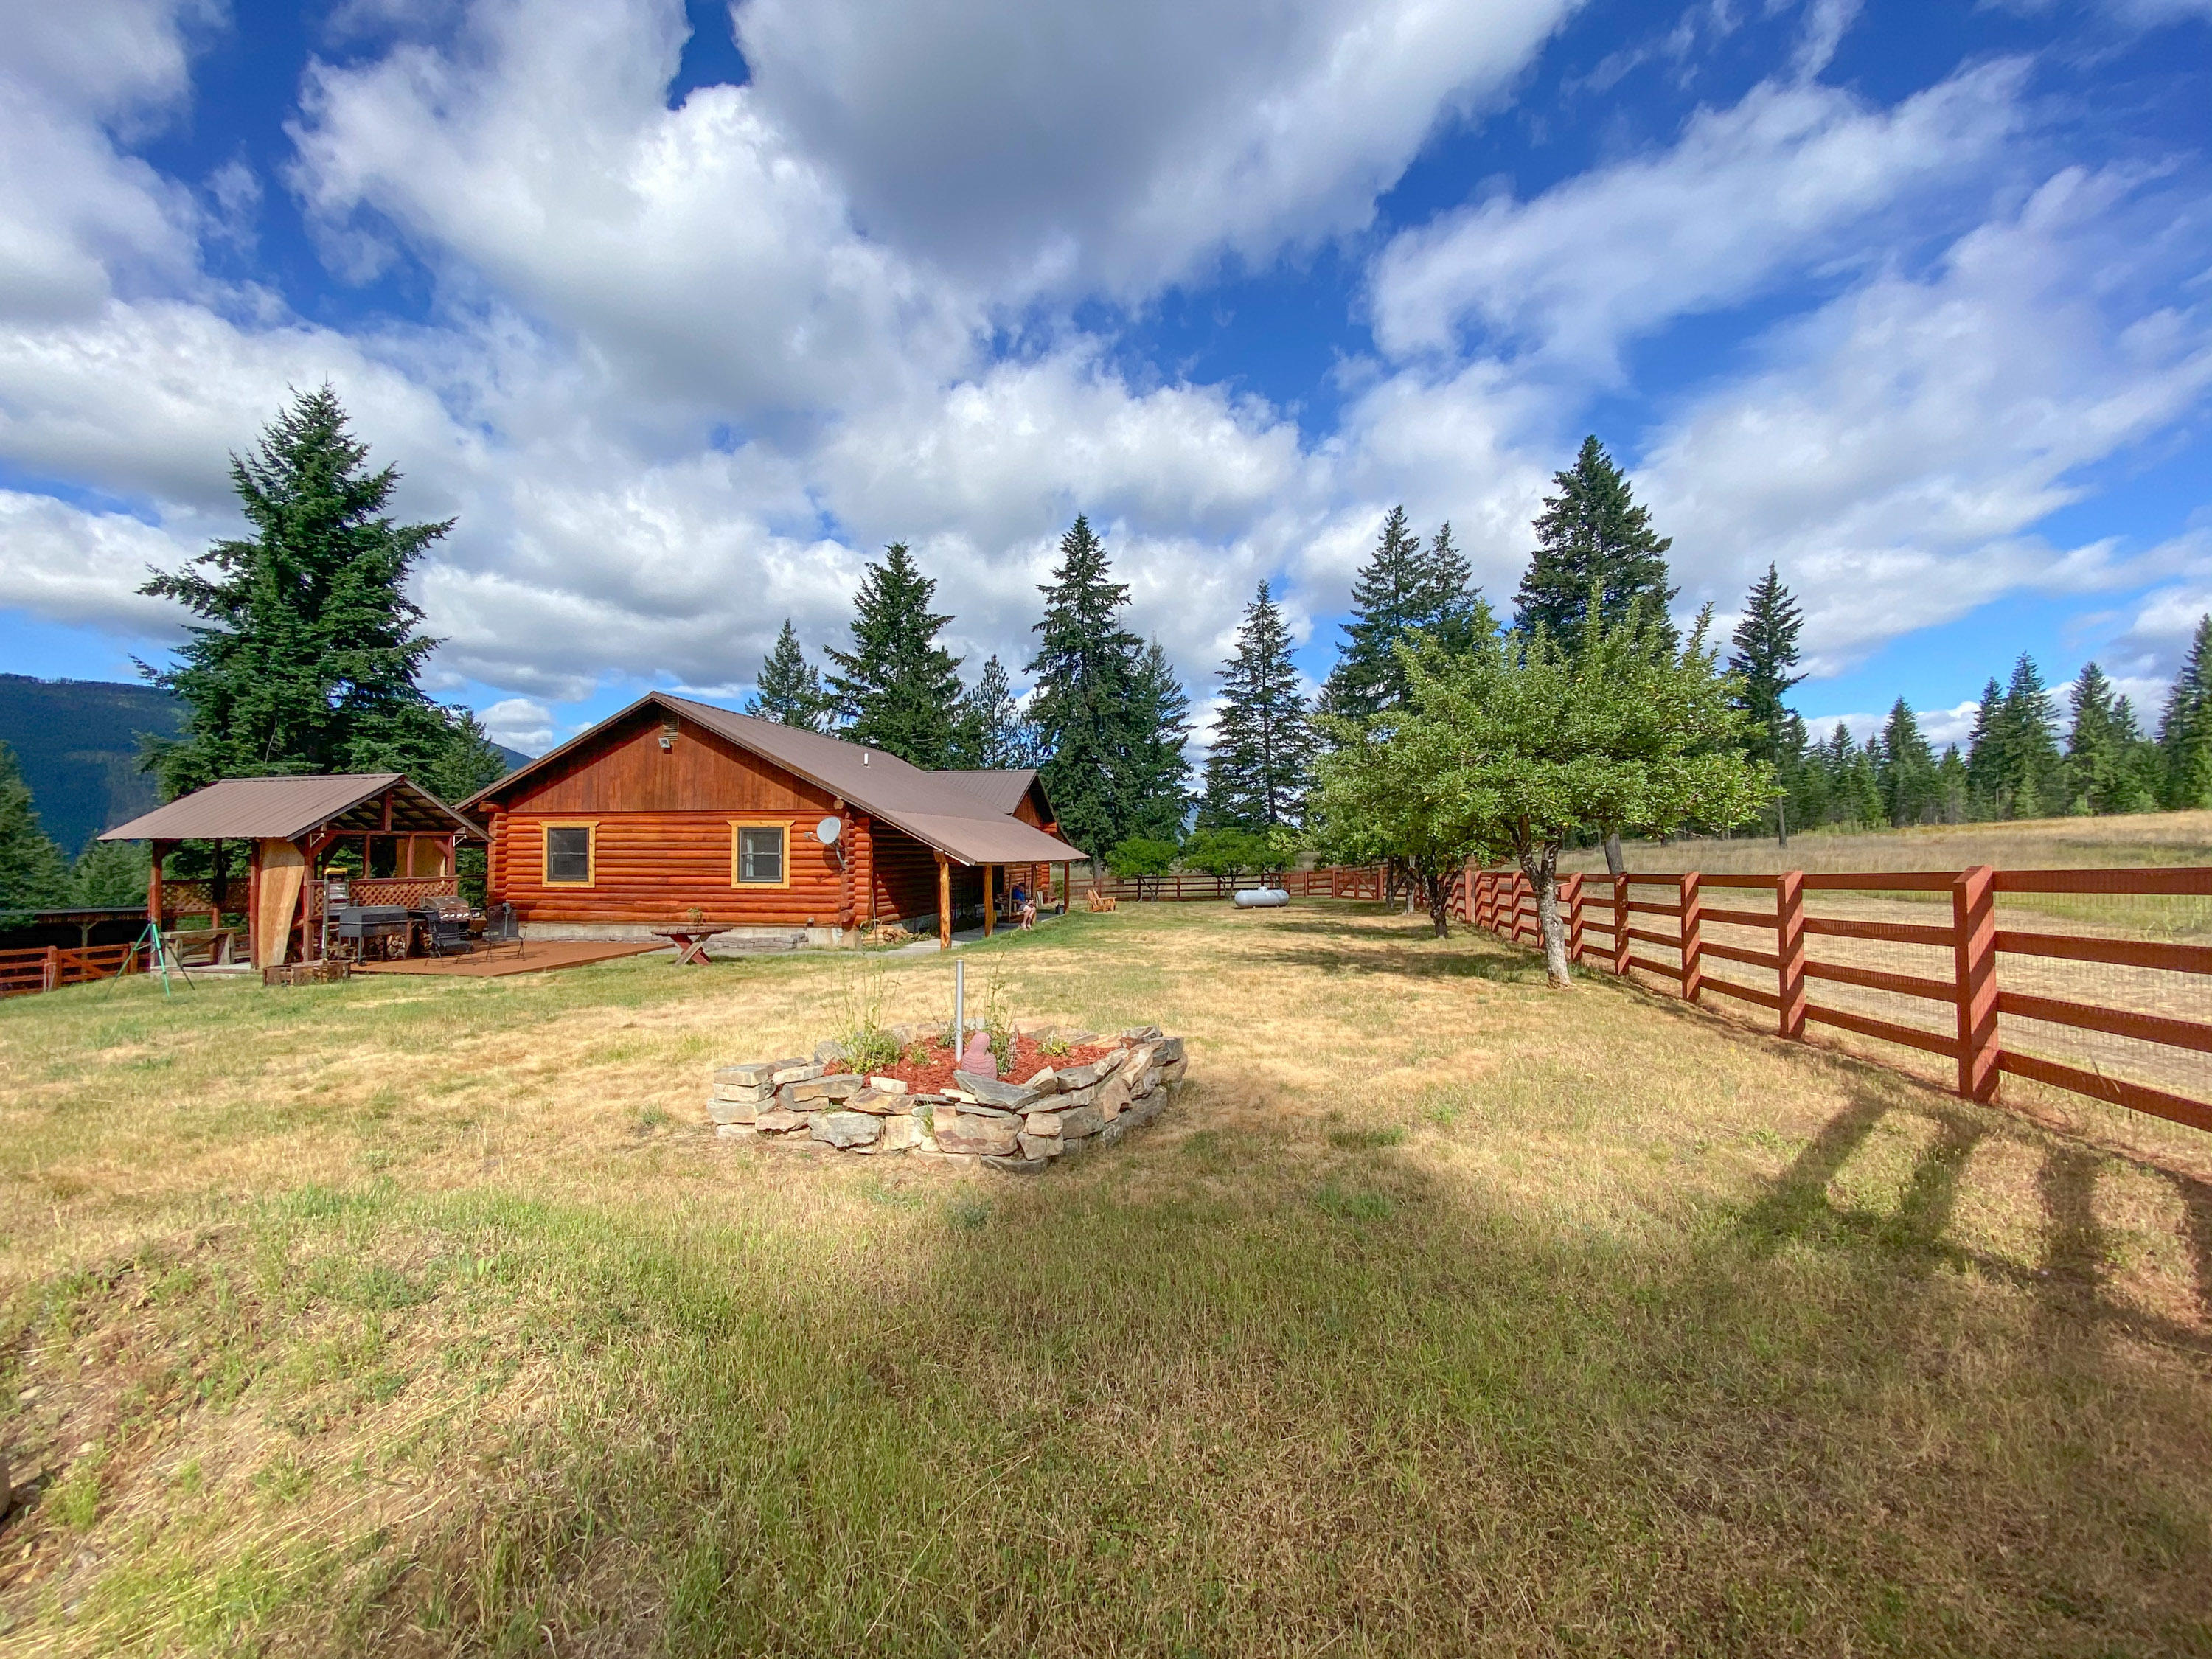 Montana log home on almost 40 acres.